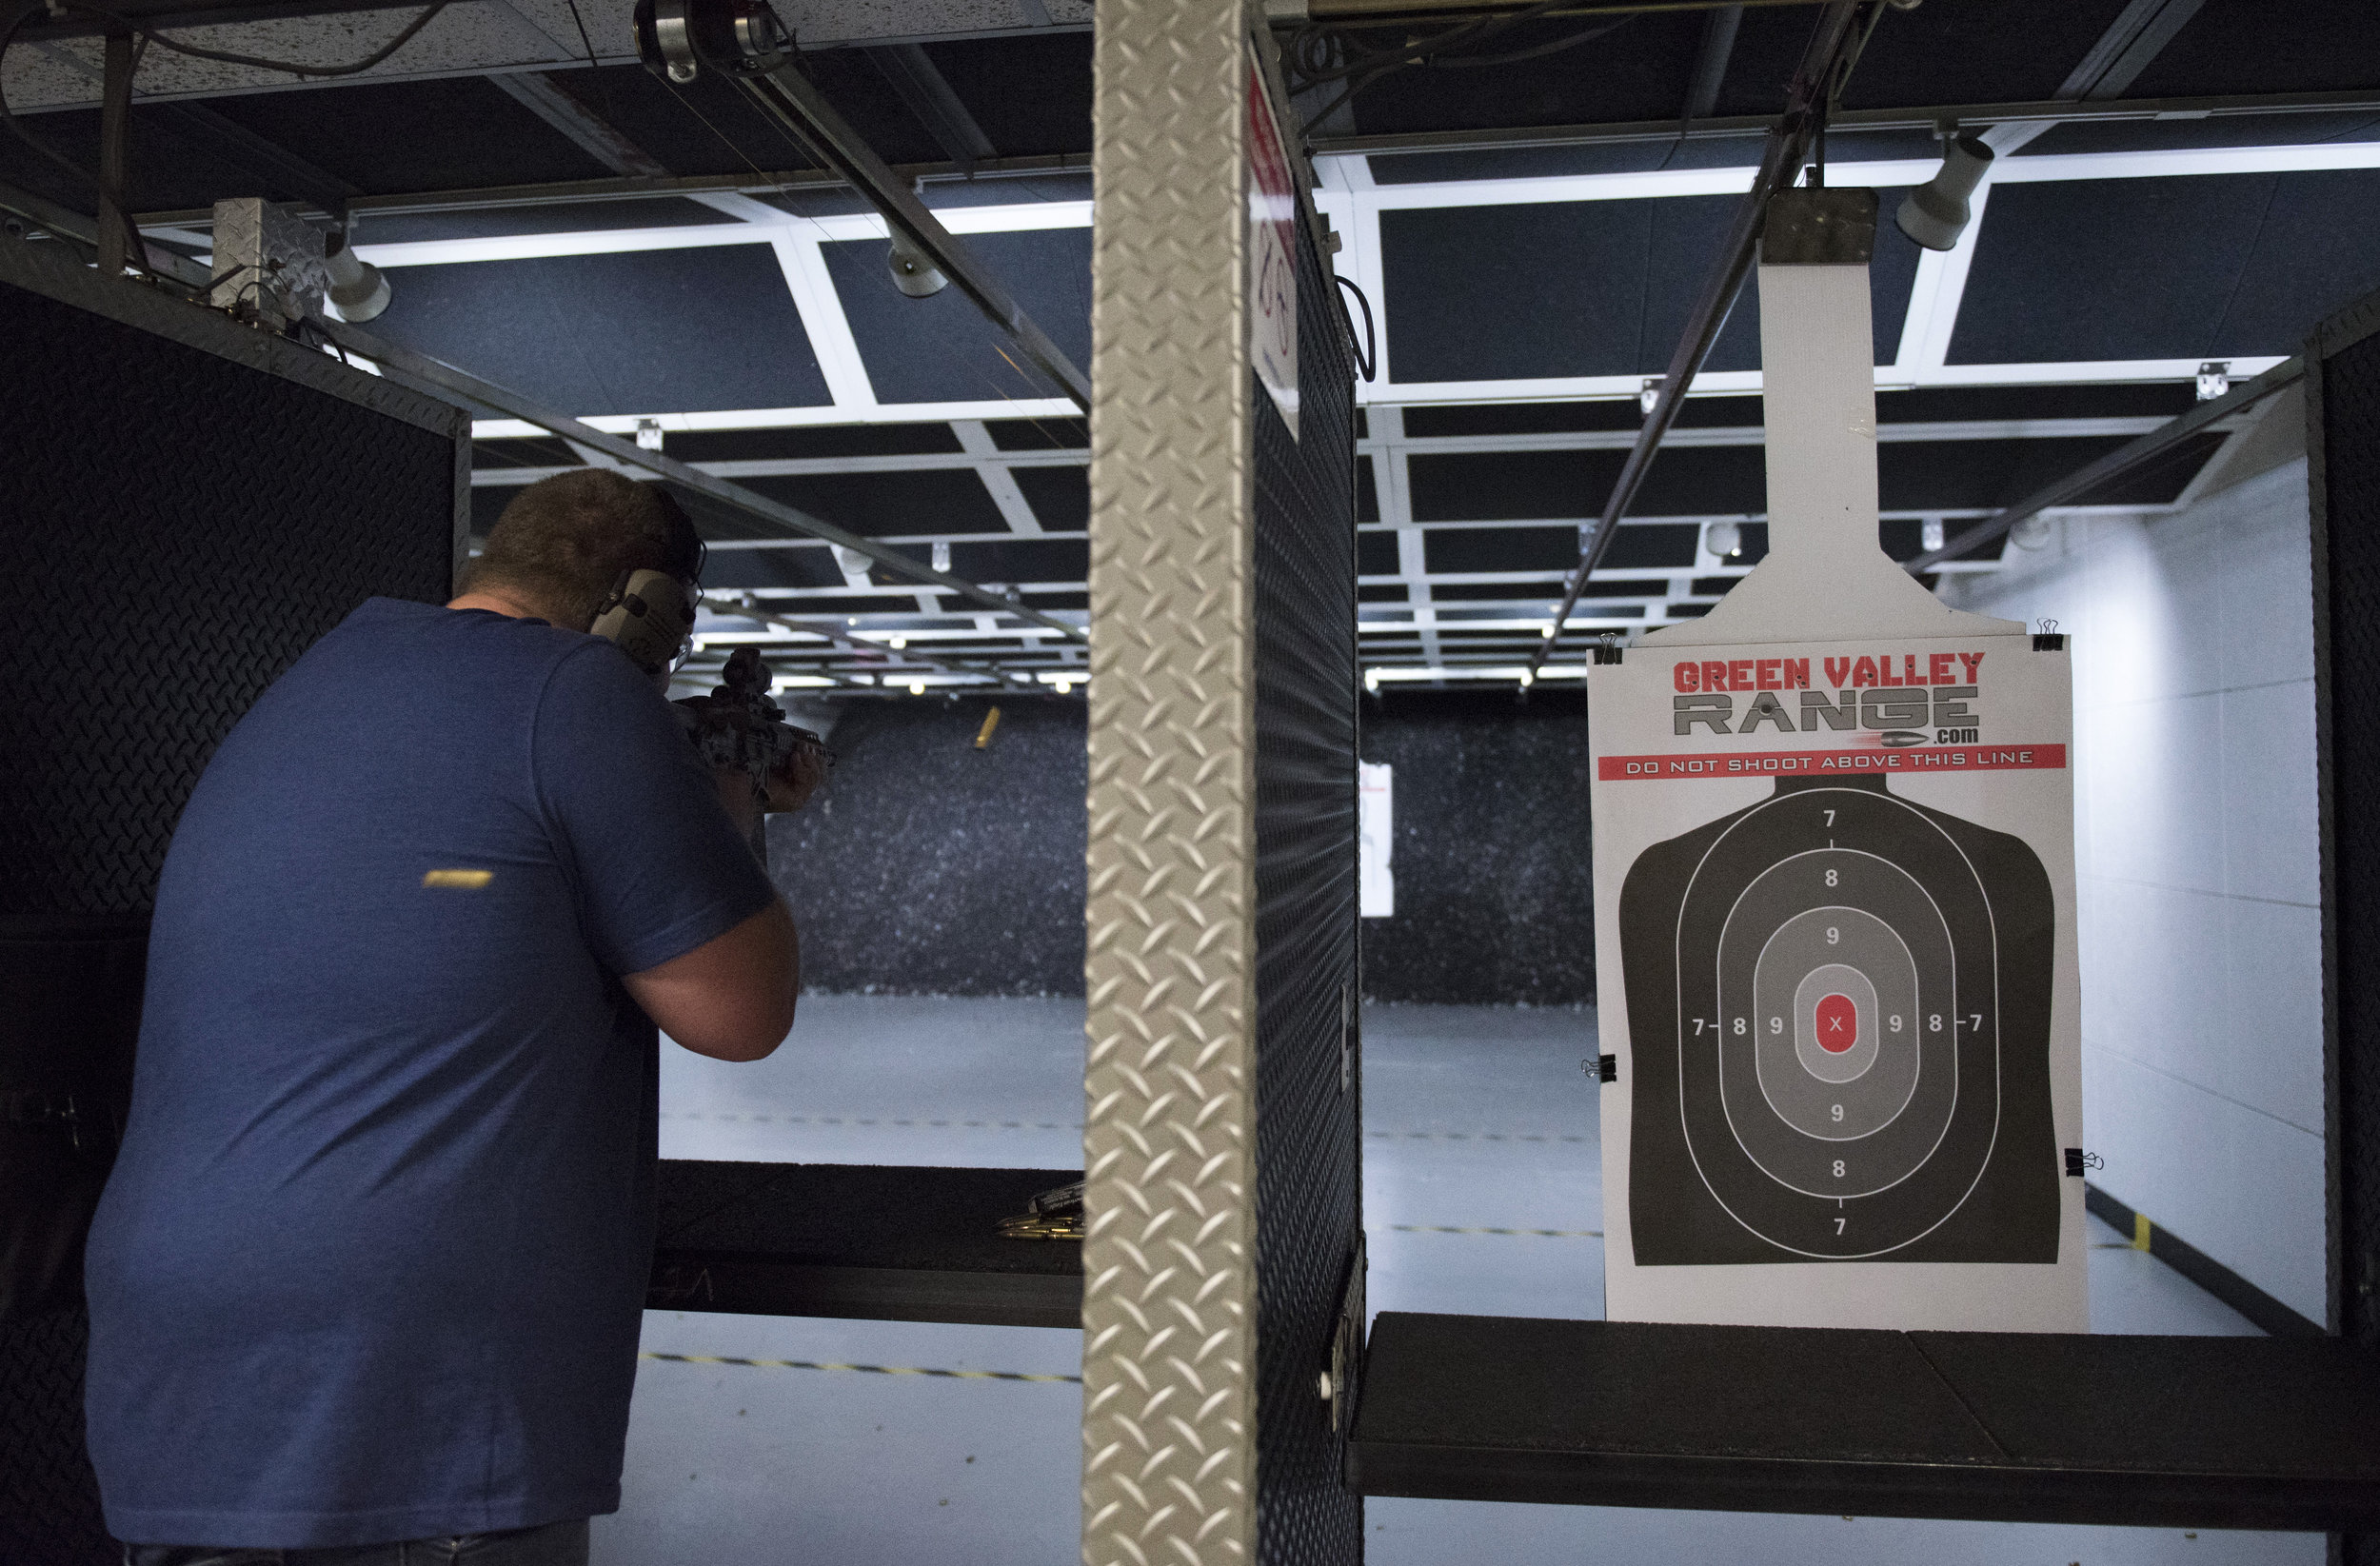 Battle Arms Development employee Tyler Schlappi does a function test on a short-barreled rifle at Green Valley Range in Henderson, Nev..